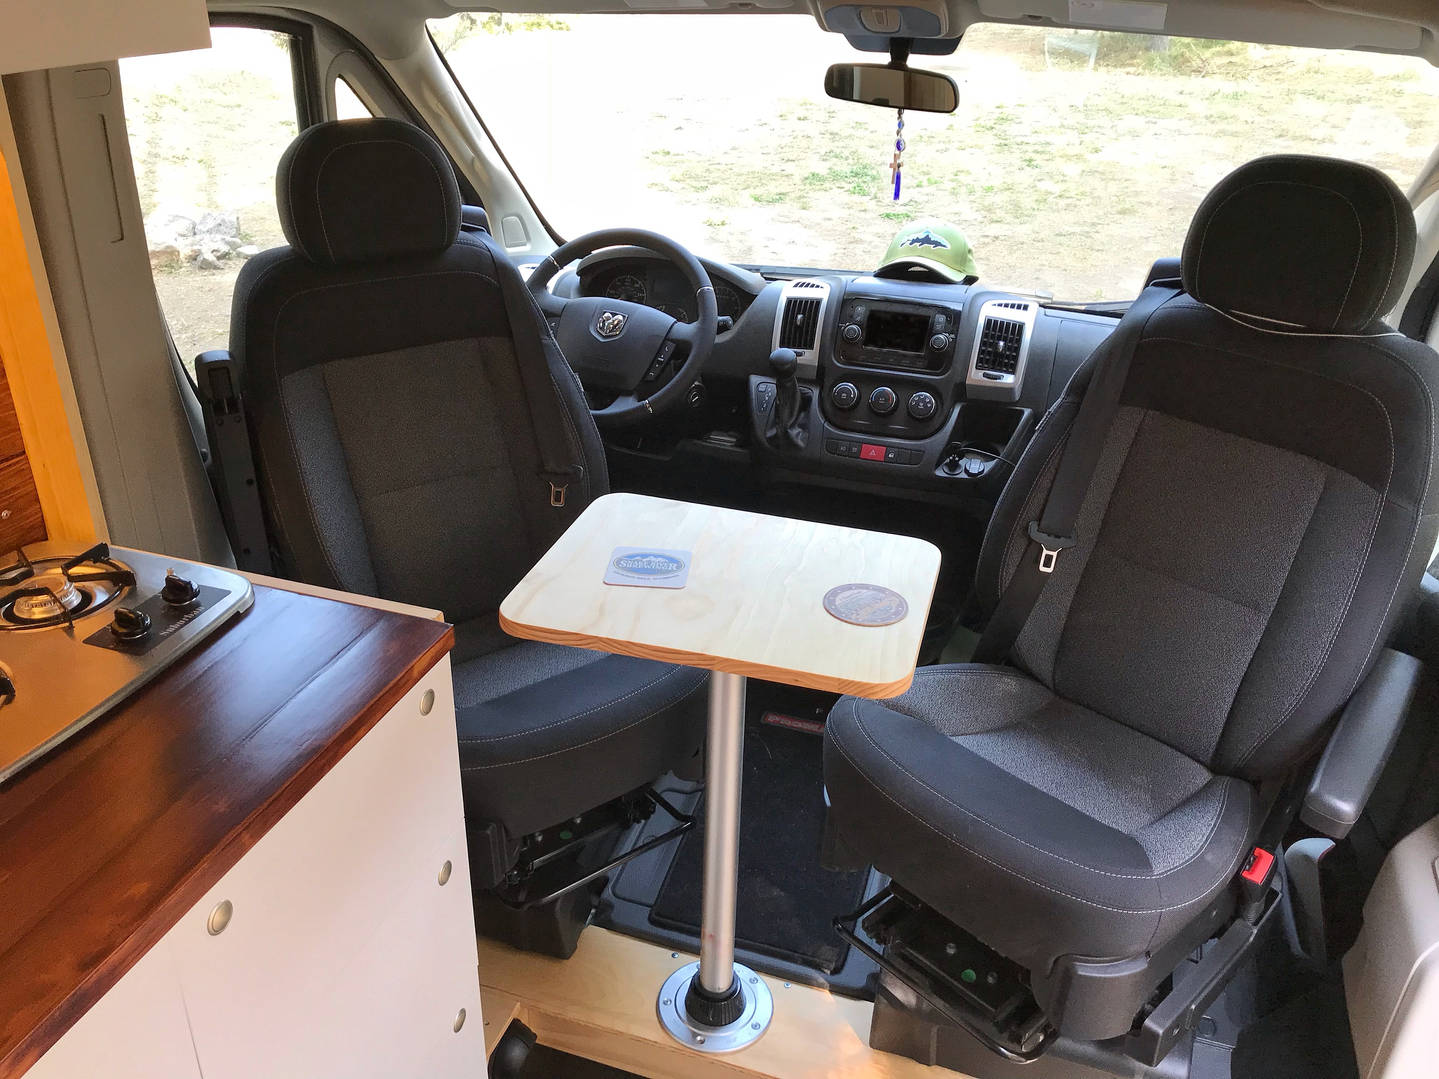 Dinette Area - Swivel Seats & Removable Table